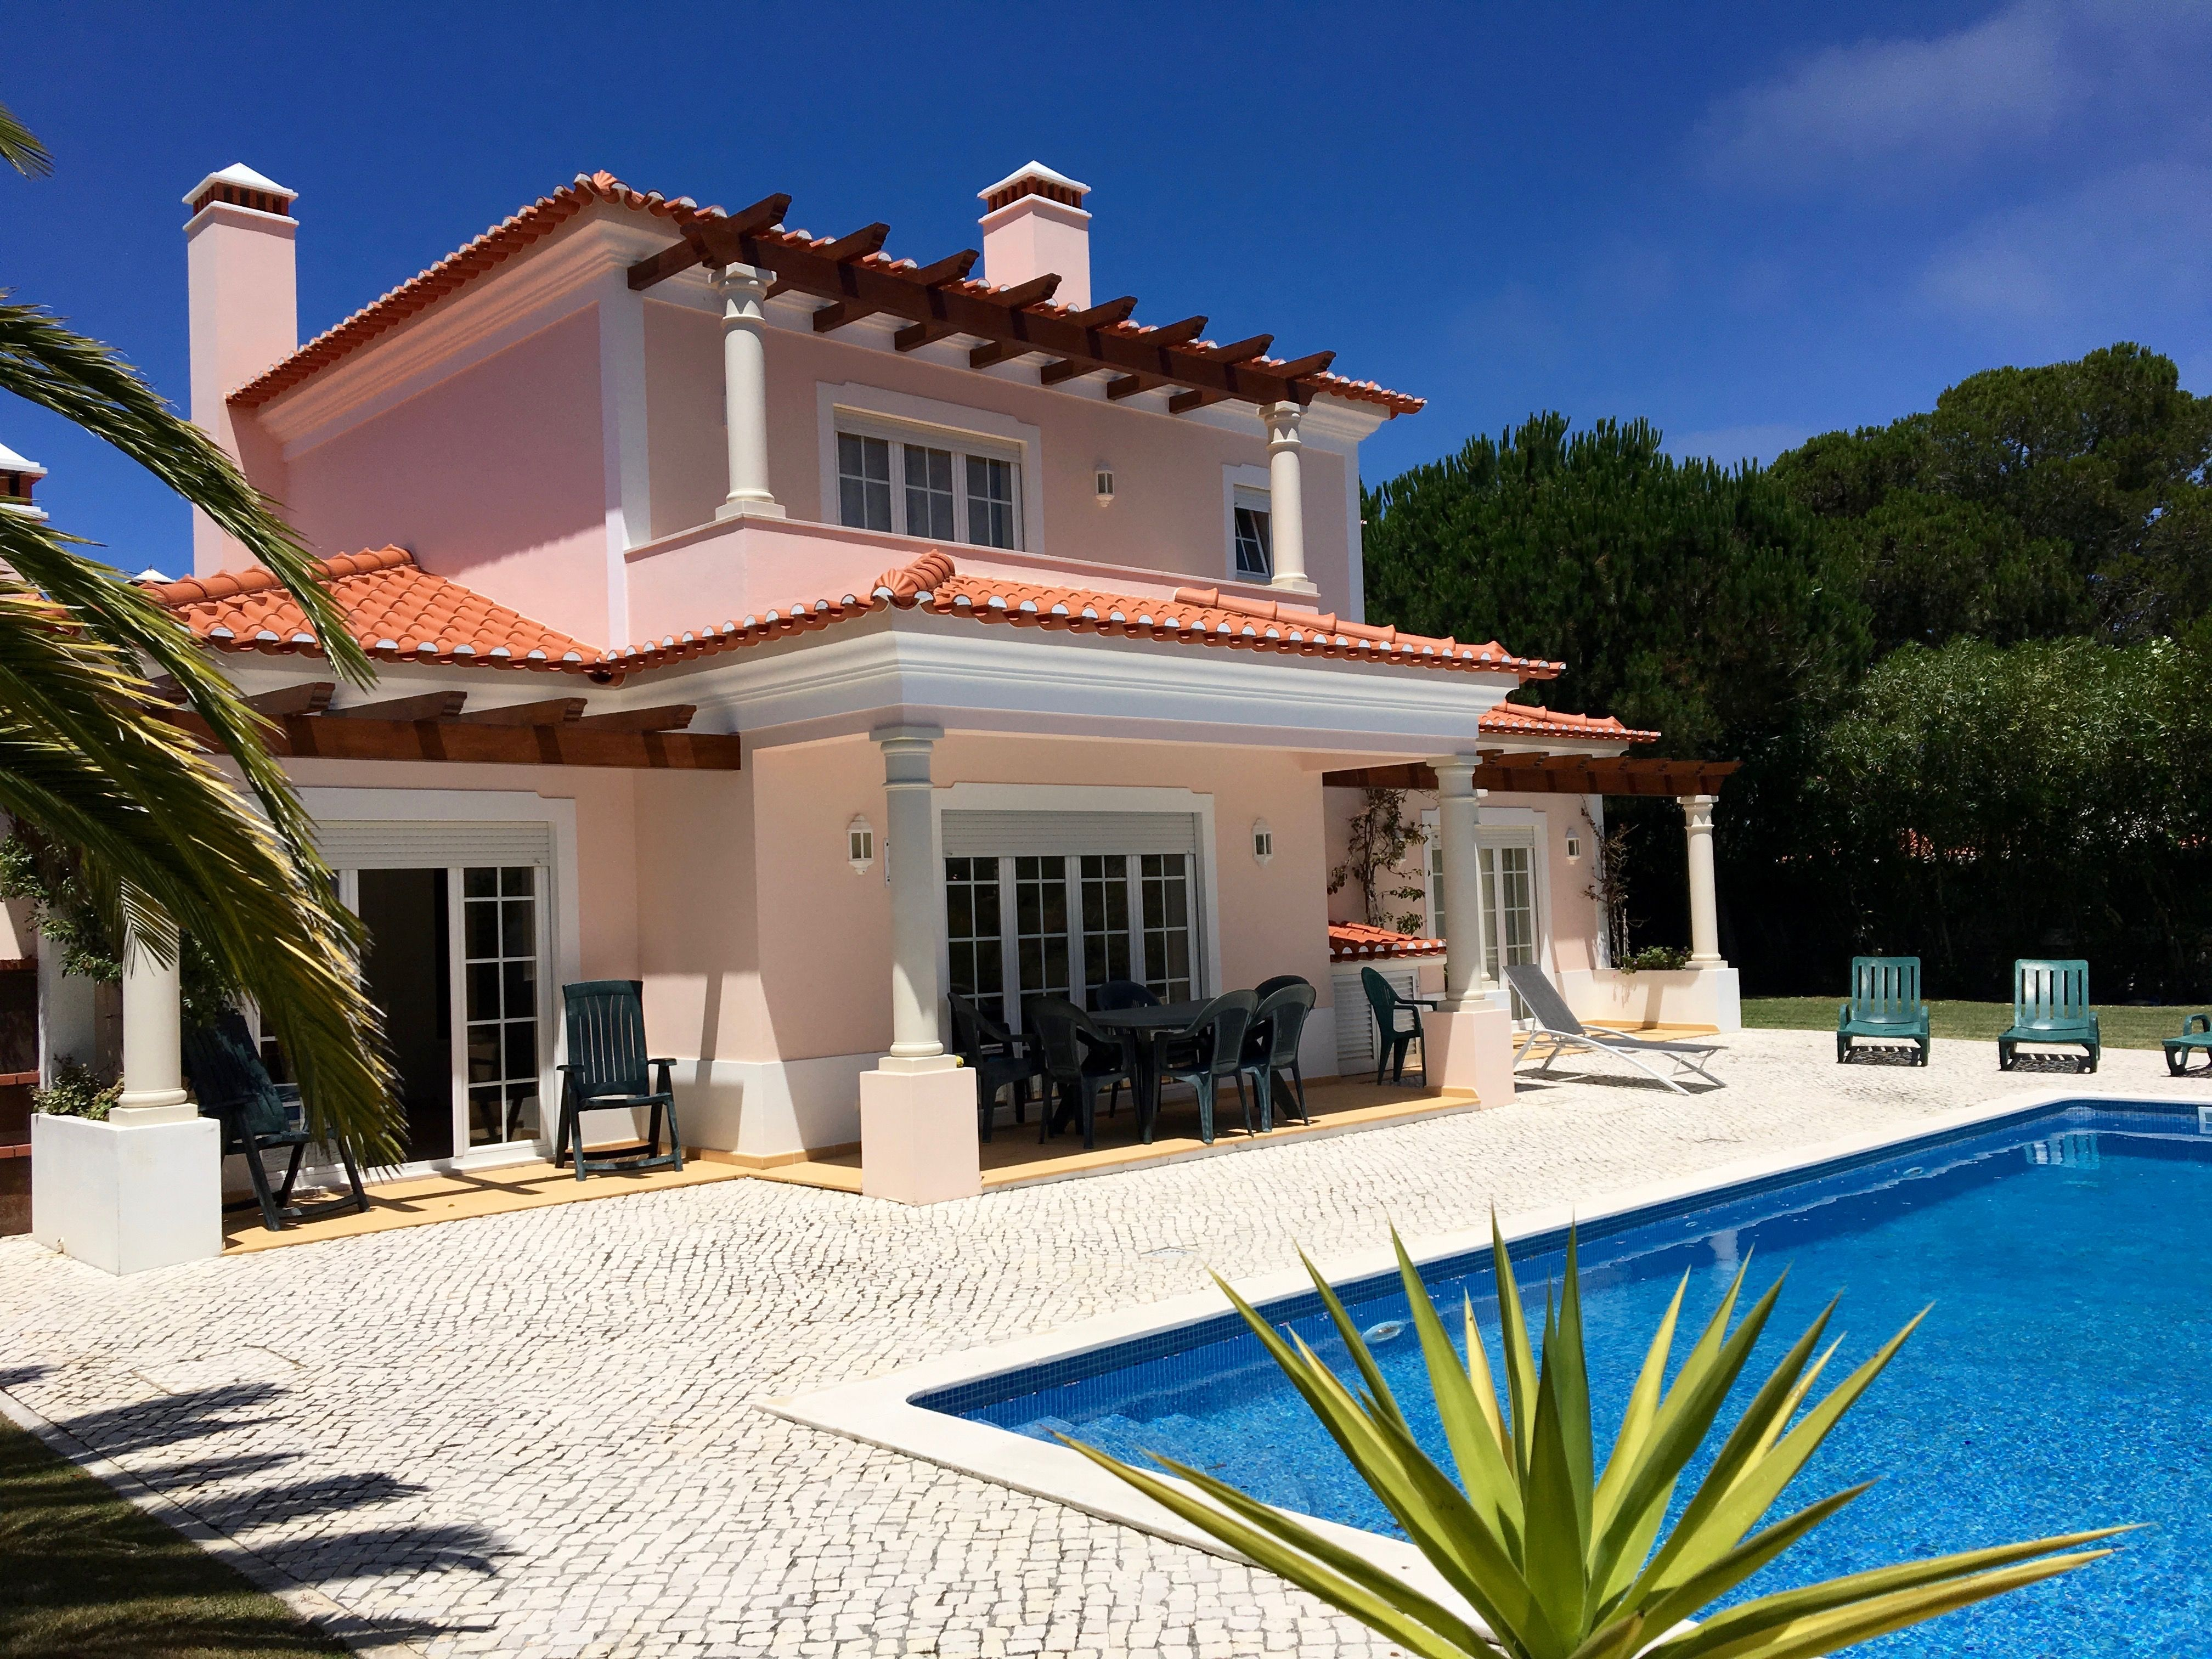 Villa Rosa, Peniche, Portugal. Very comfortable villa with access to resort amenities if you want them. Plenty of great beaches to visit and days out too discovering 'alternative' Portugal